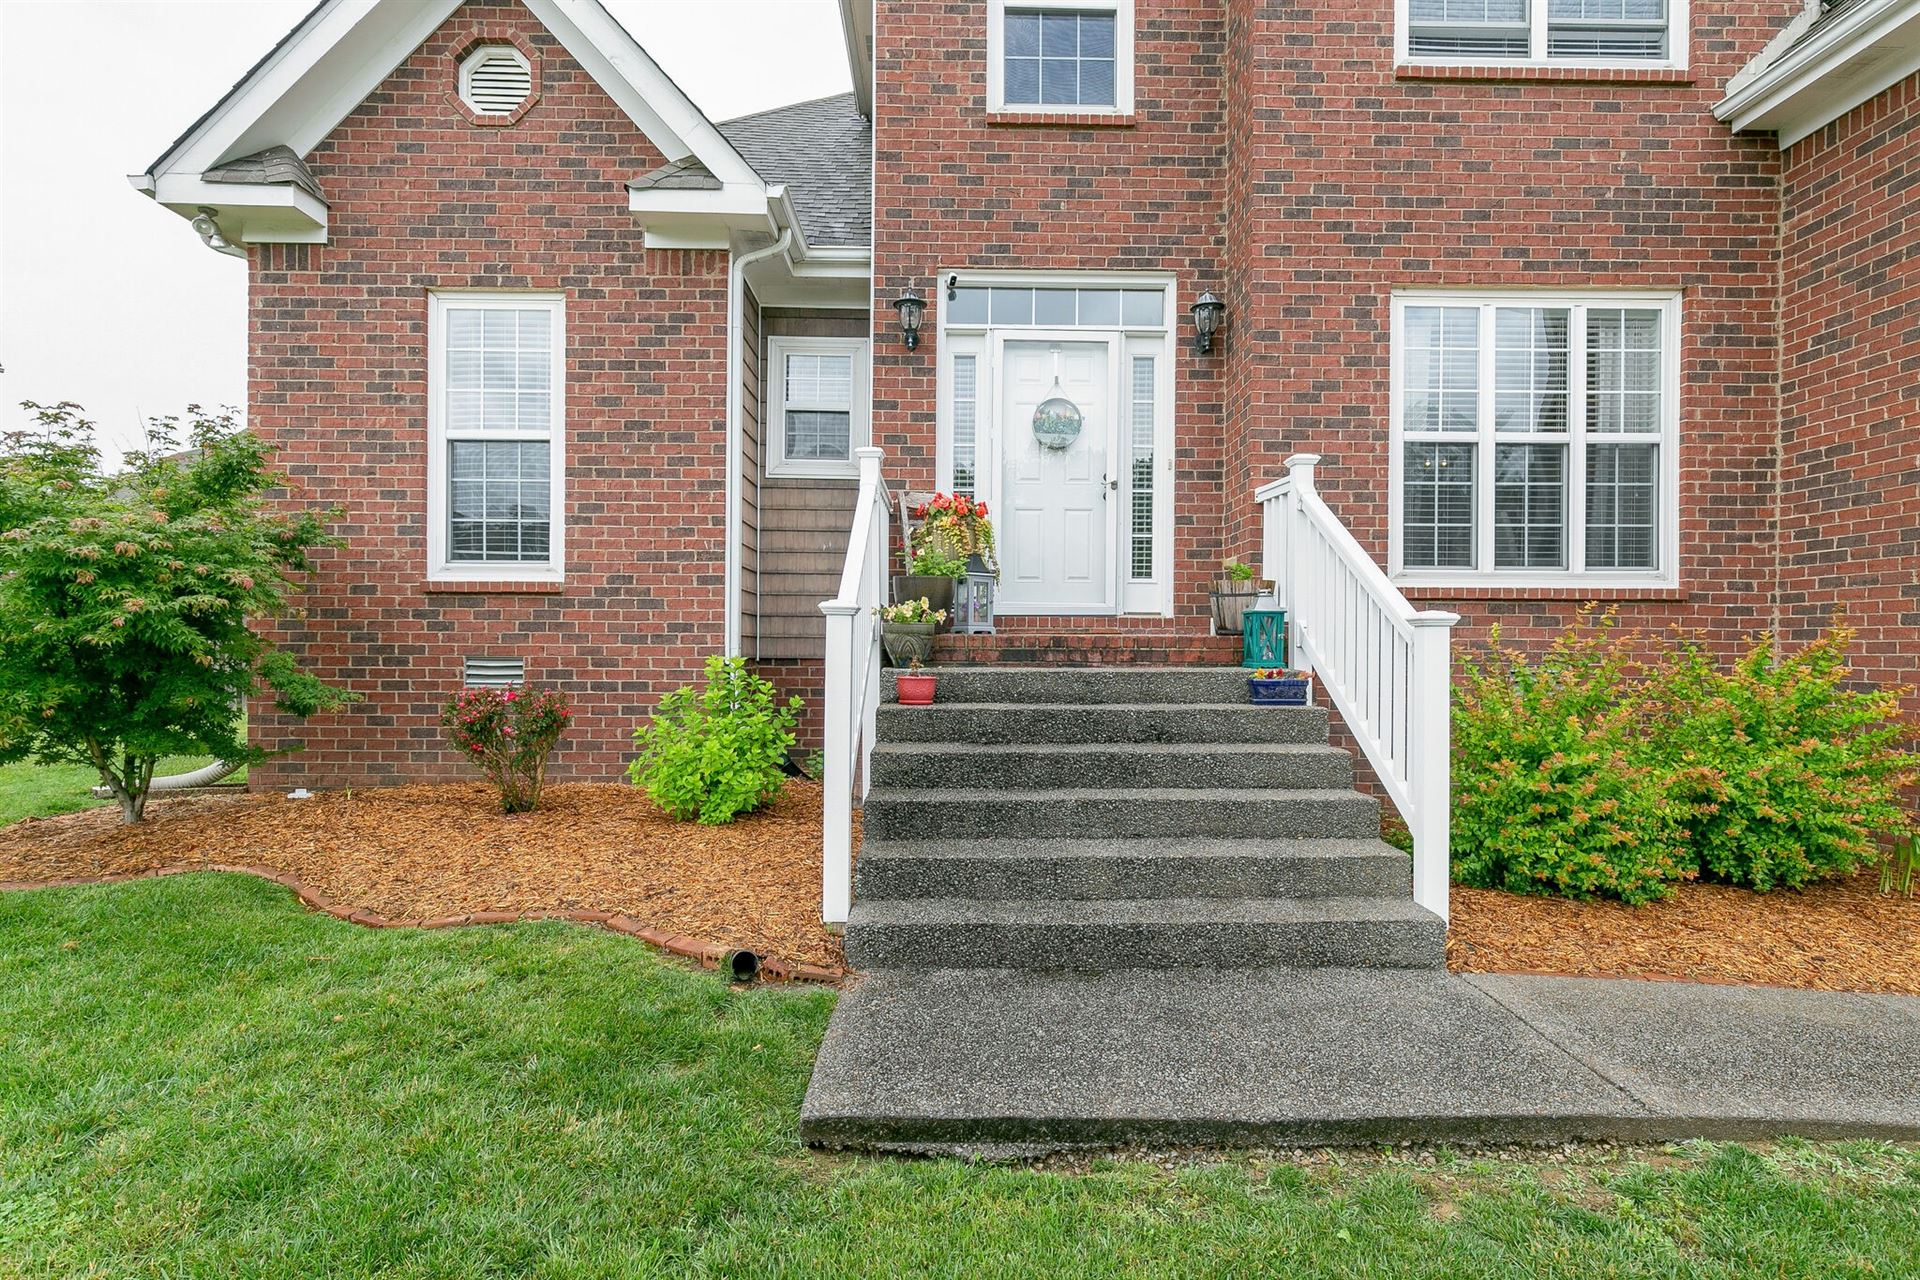 Photo of 2079 Lequire Ln, Spring Hill, TN 37174 (MLS # 2154898)